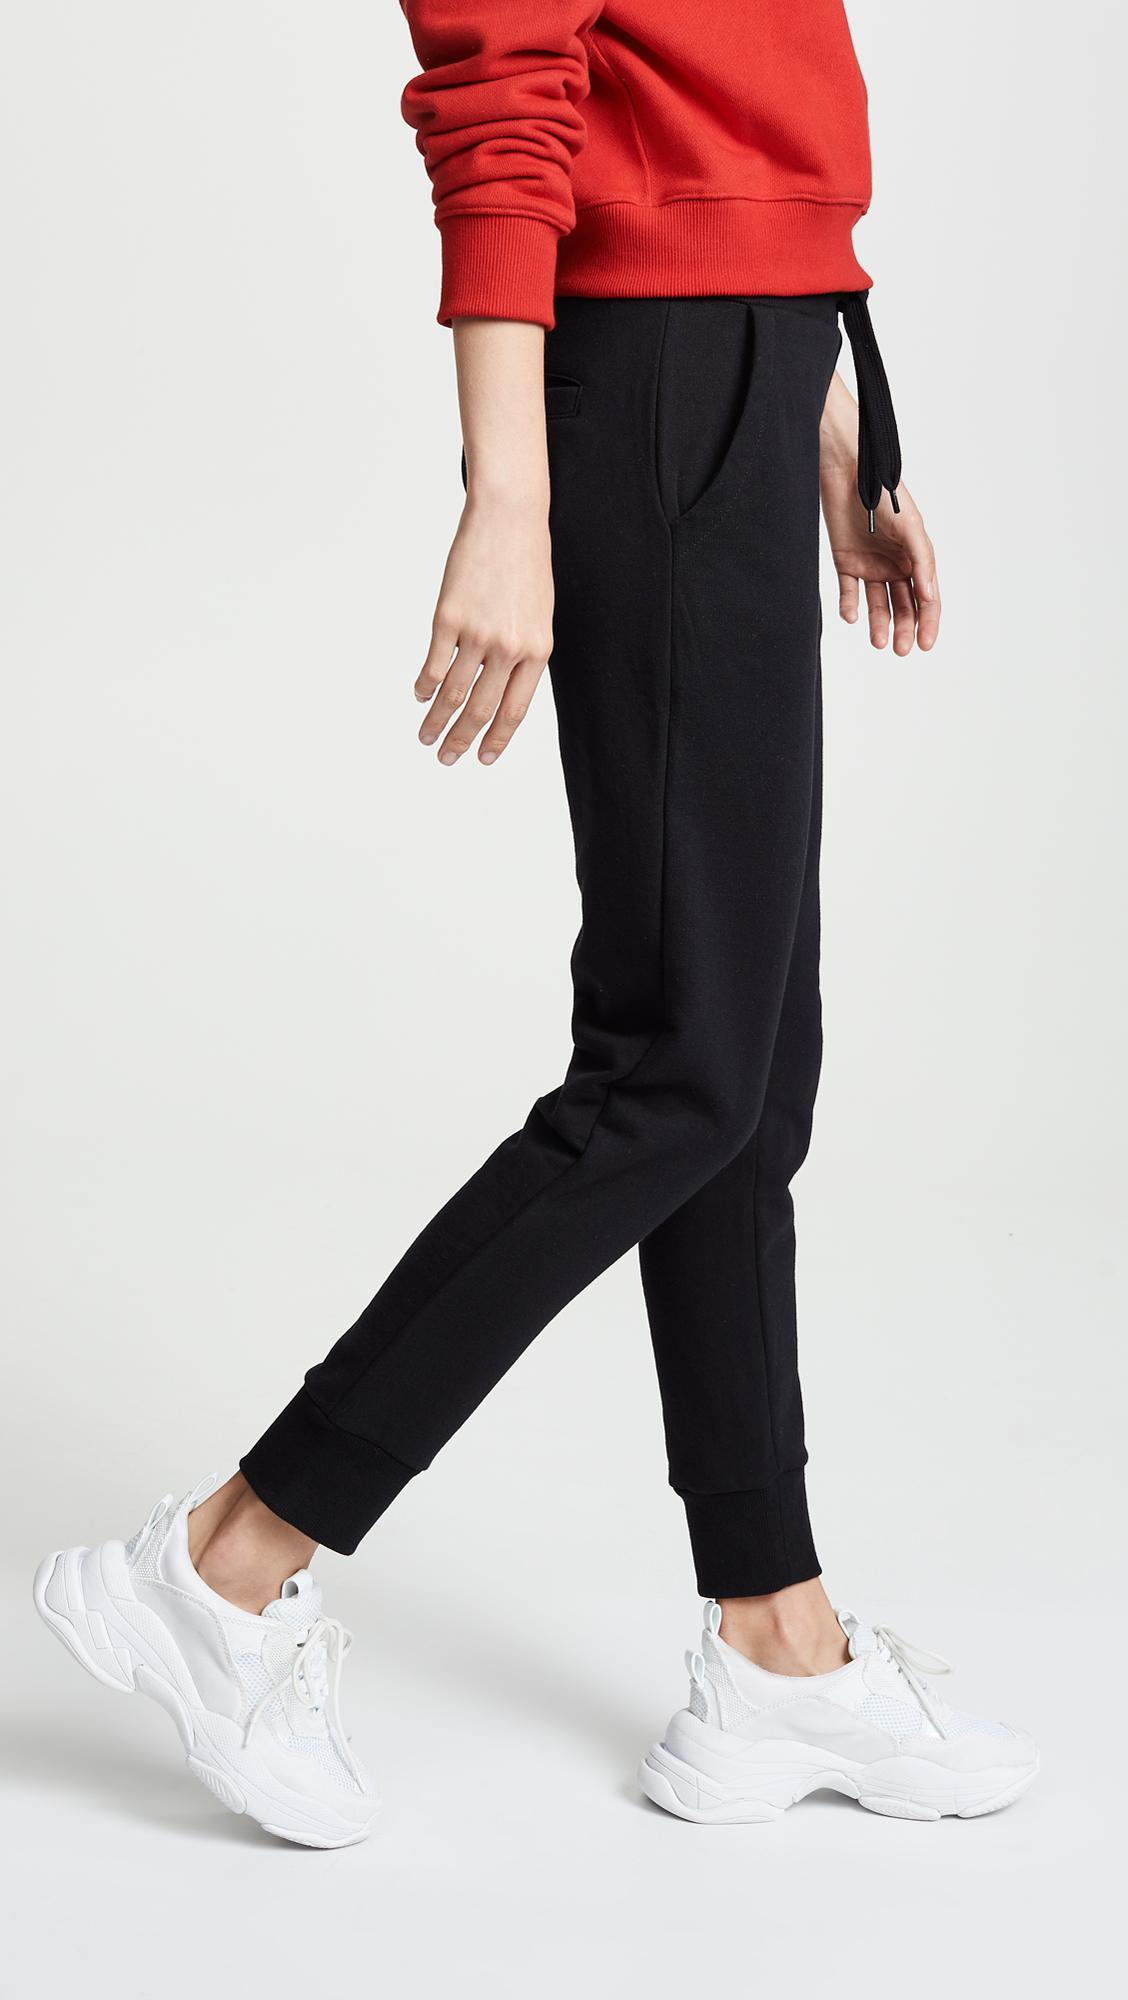 dfd6a56eba8e Lyst - Fila Frances Jogger in Black - Save 18%